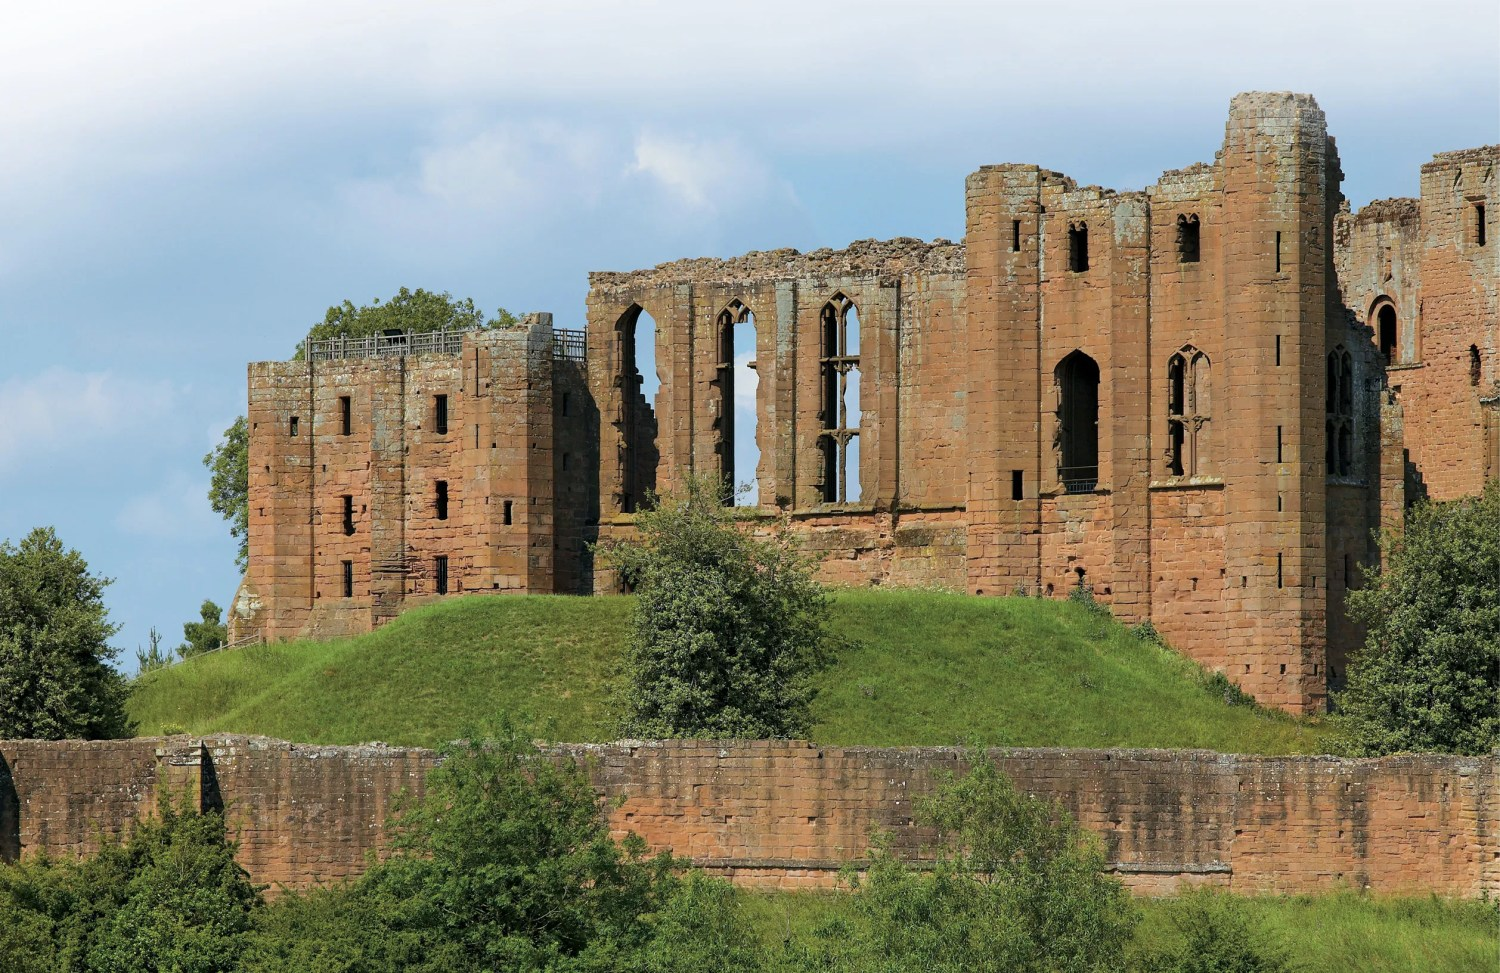 top Kenilworth Castle, where Robert Dudley, Earl of Leicester, sought to woo Elizabeth I.